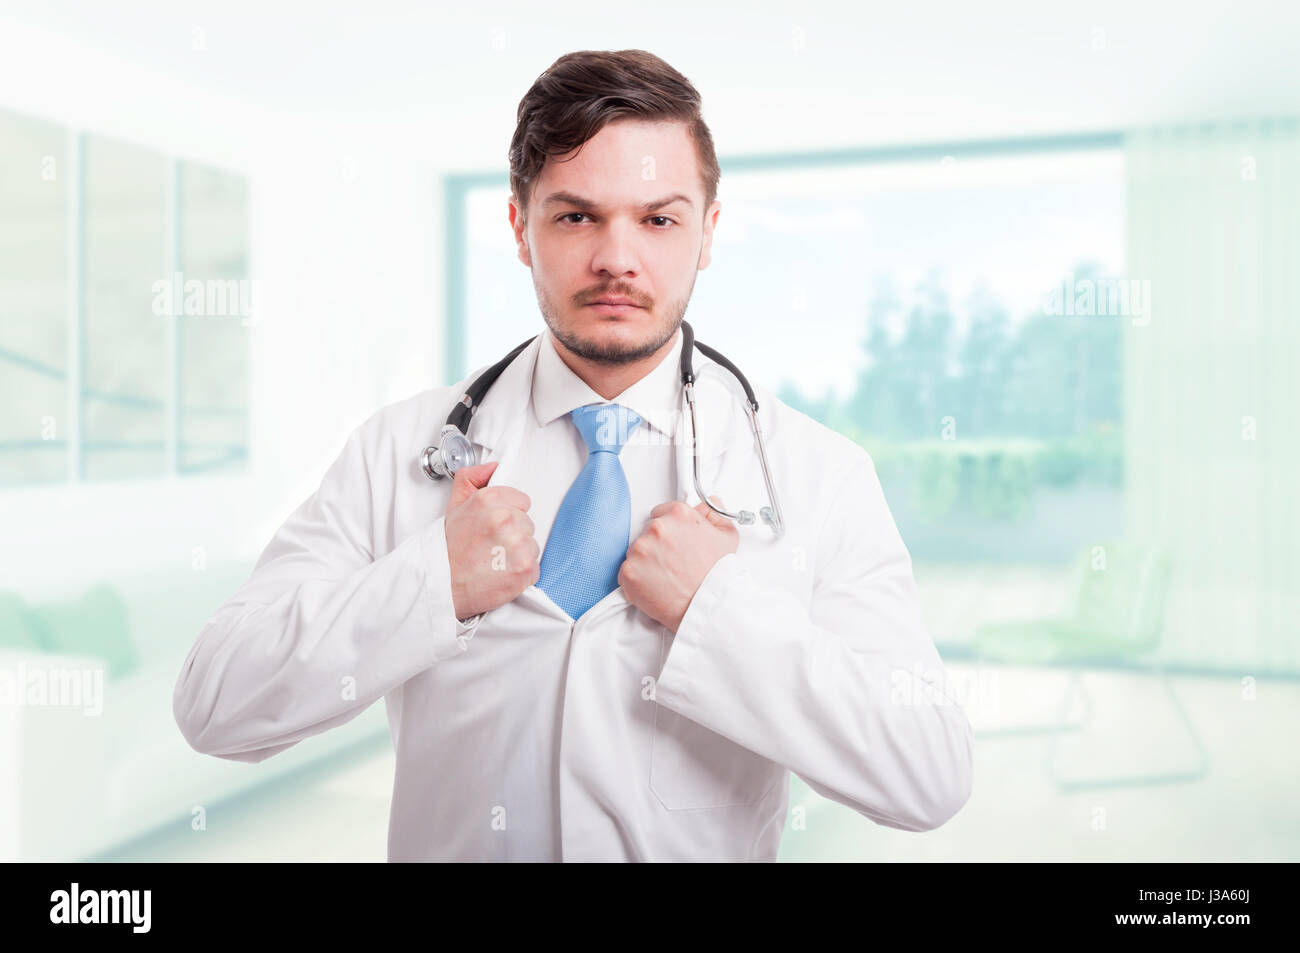 Handsome doctor tearing his lab coat acting brave as superhero concept - Stock Image